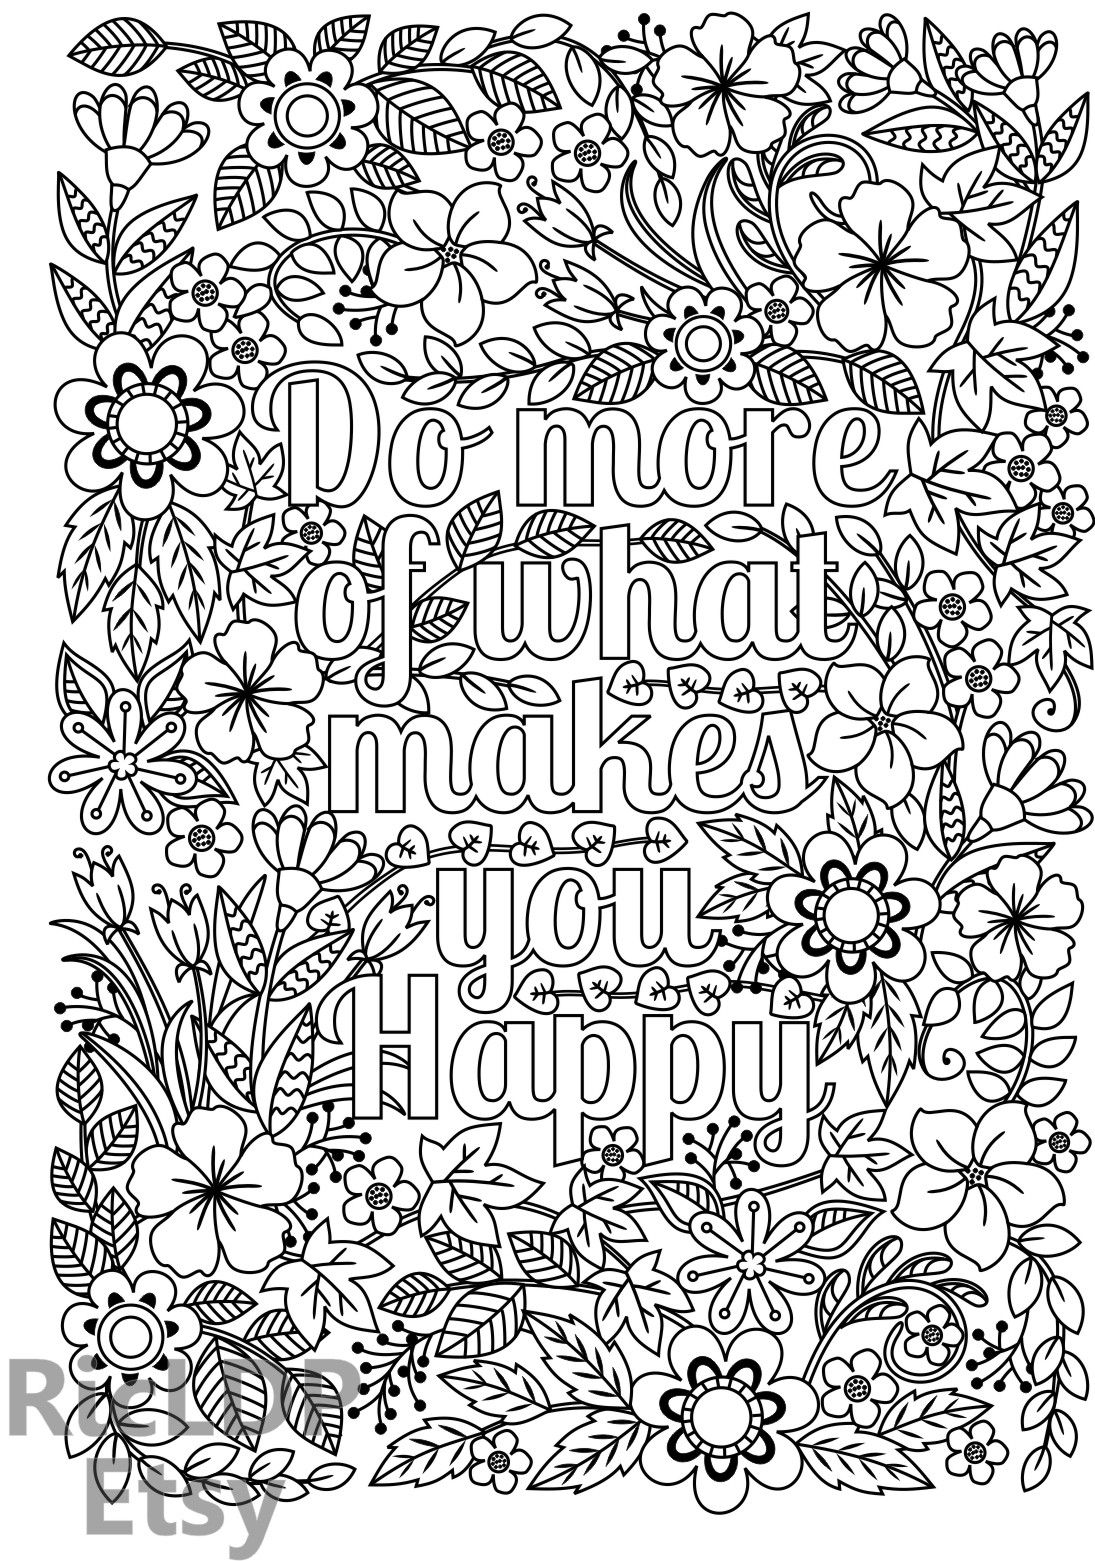 Flower designs coloring book - Printable Do More Of What Makes You Happy Flower Design Coloring Page